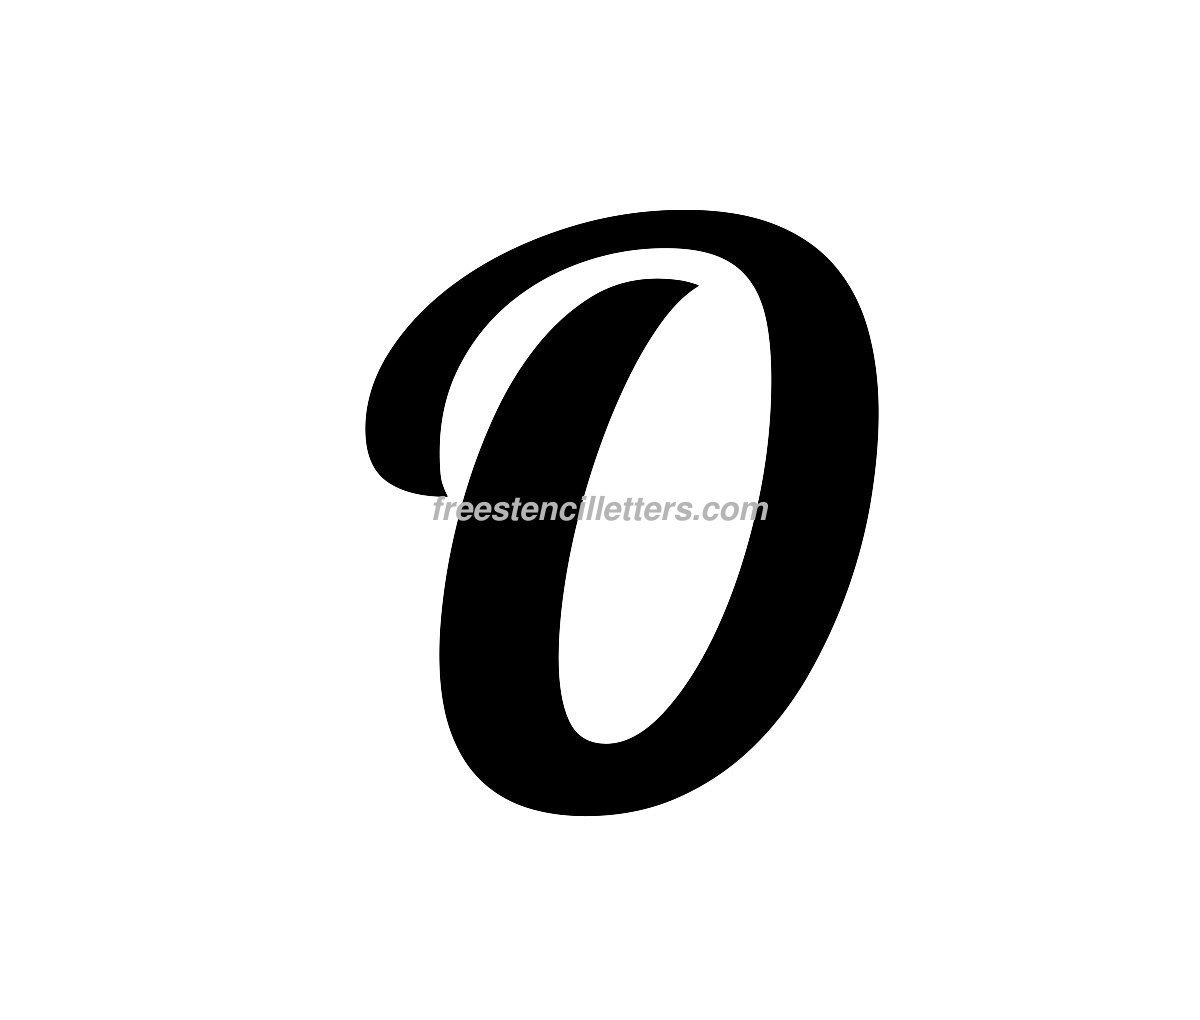 Download Print O Letter Stencil to print and cut out